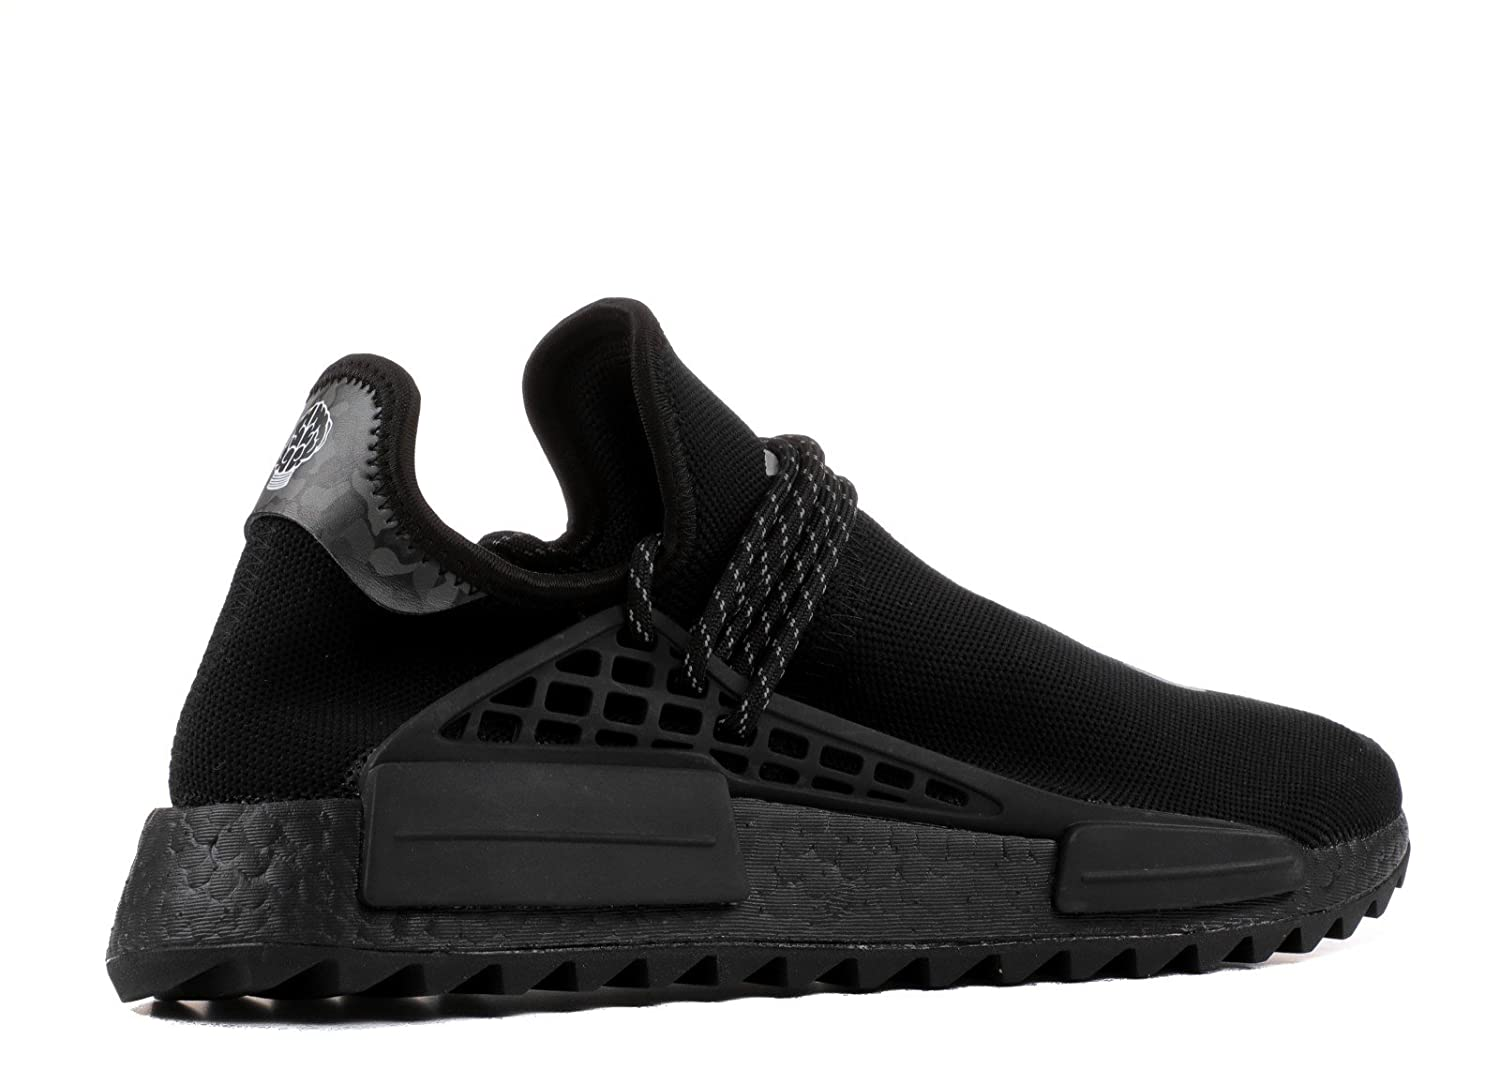 new product d95ee ebe31 adidas PW Human Race NMD TR  Nerd  - BB7603 -  Amazon.co.uk  Shoes   Bags